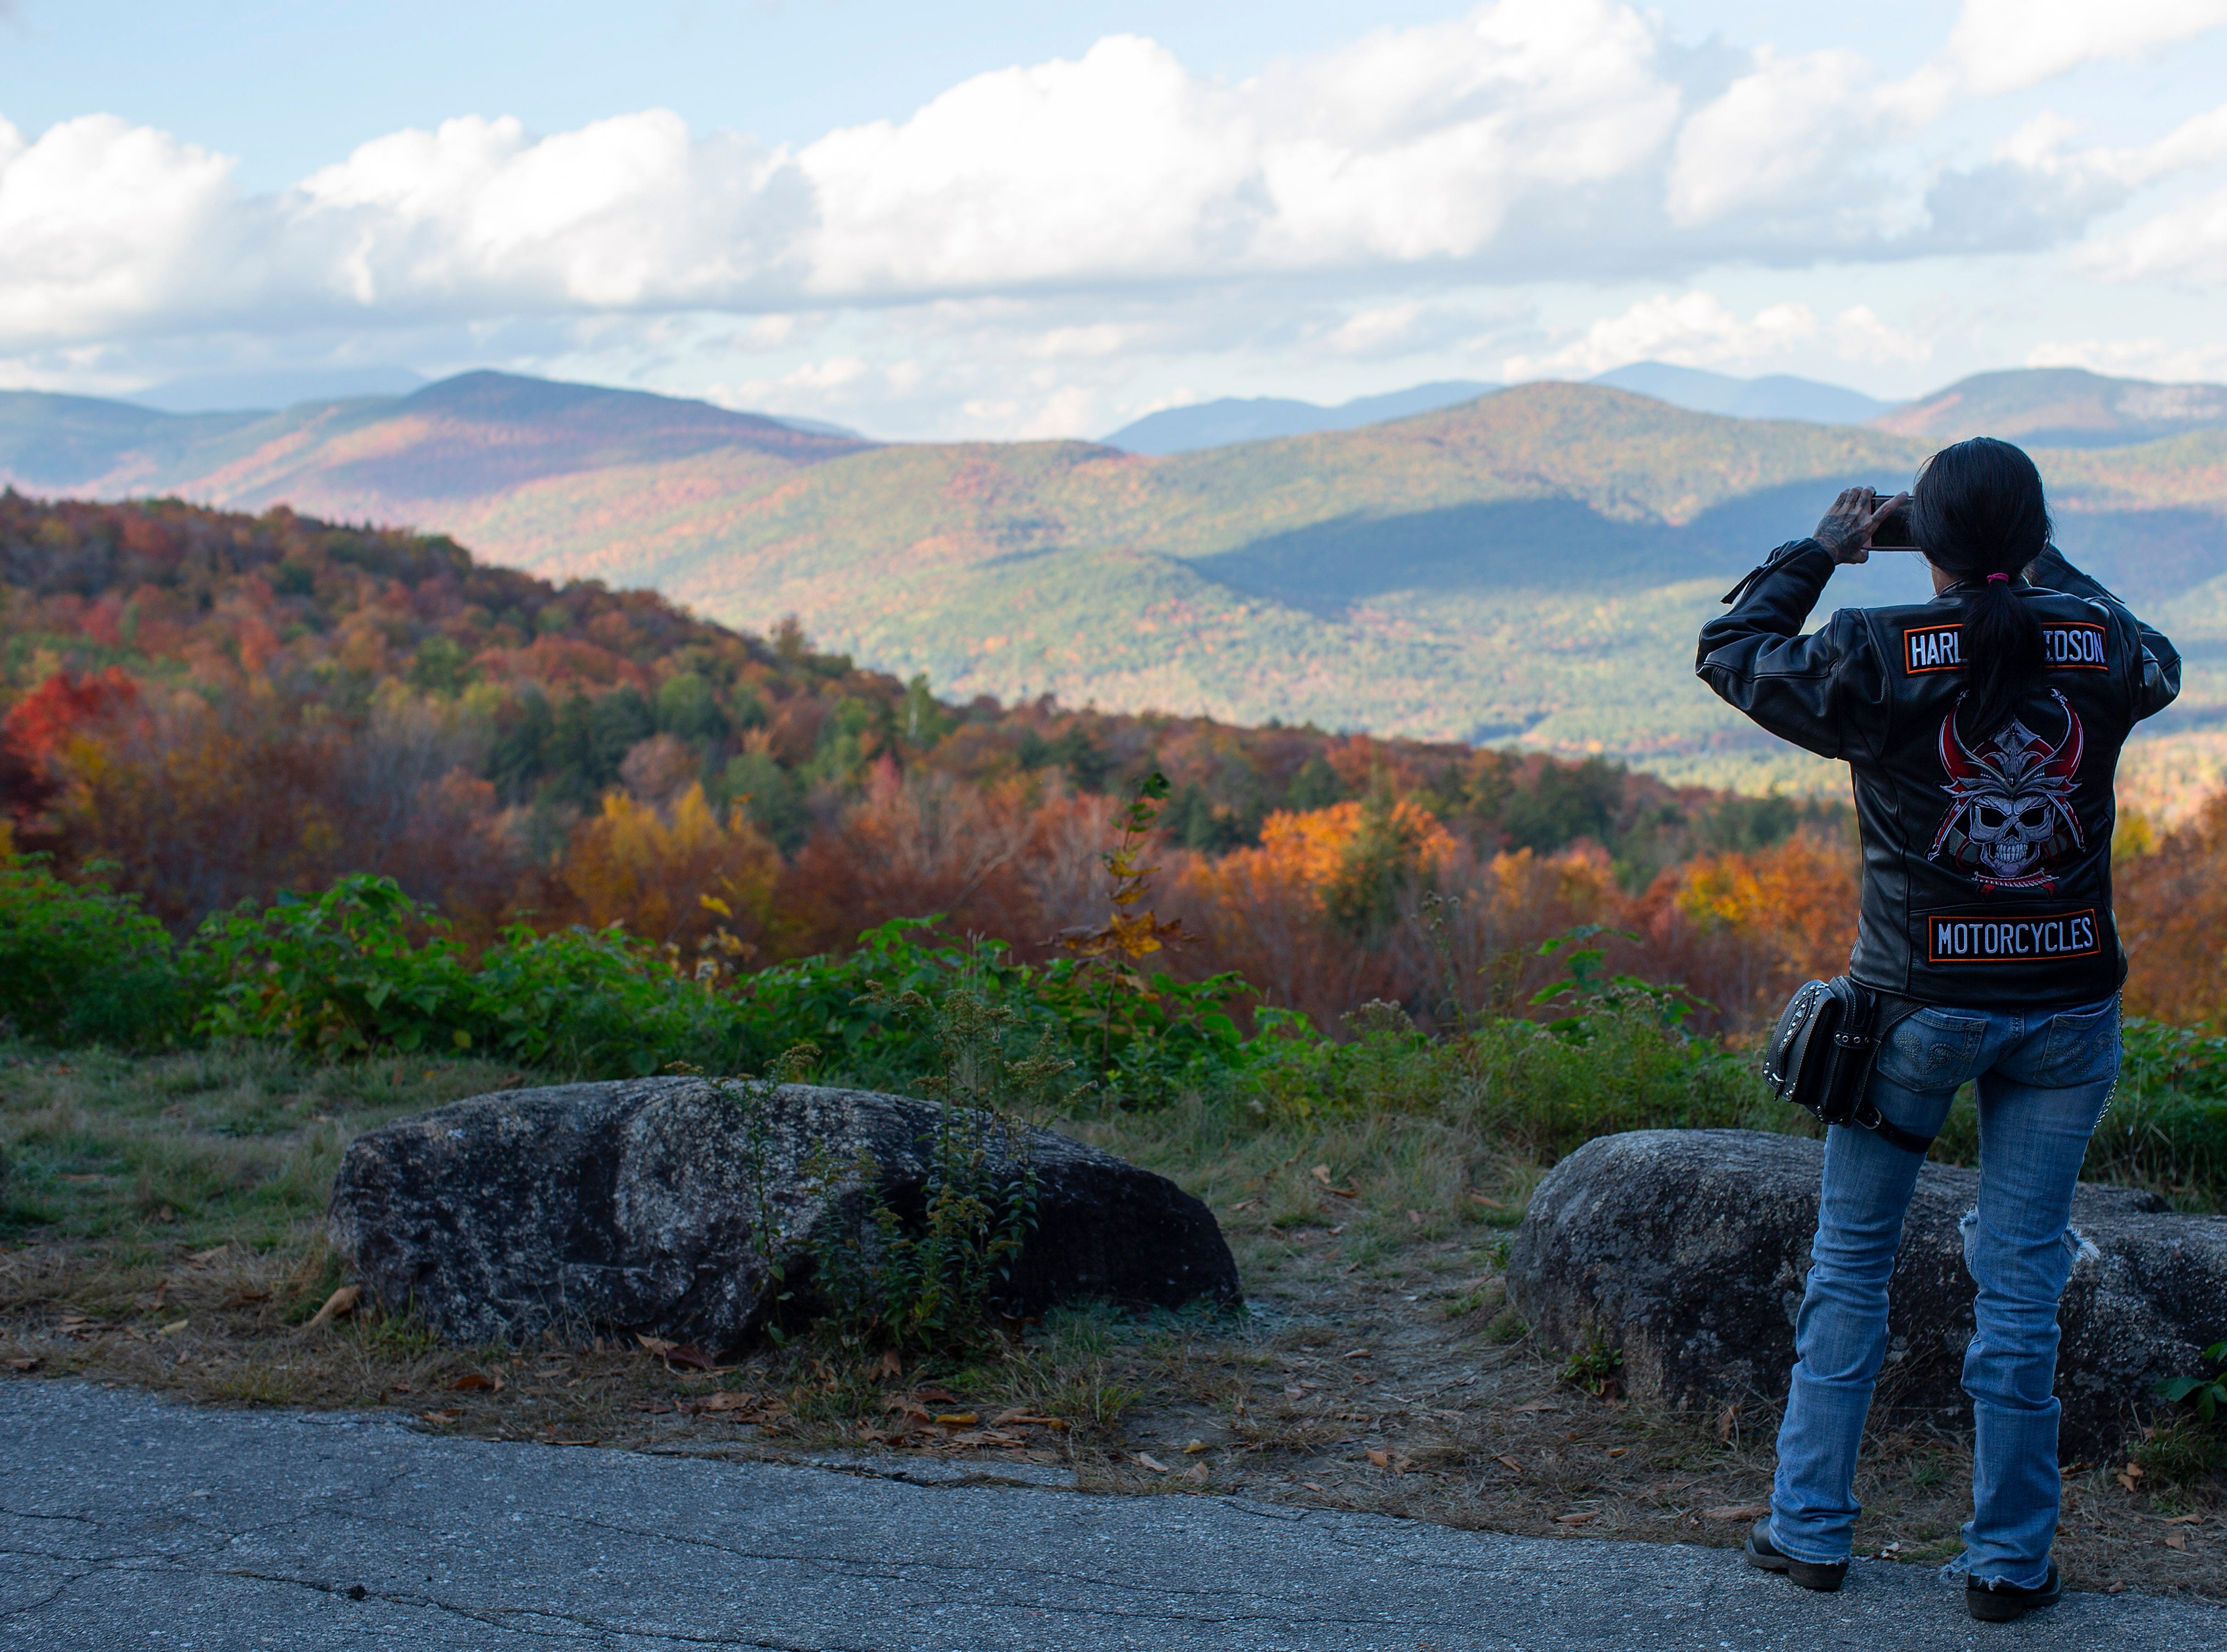 A woman photographs the fall foliage colors along the Kancamangus Highway in Bartlett, N.H. on Oct. 10, 2018.